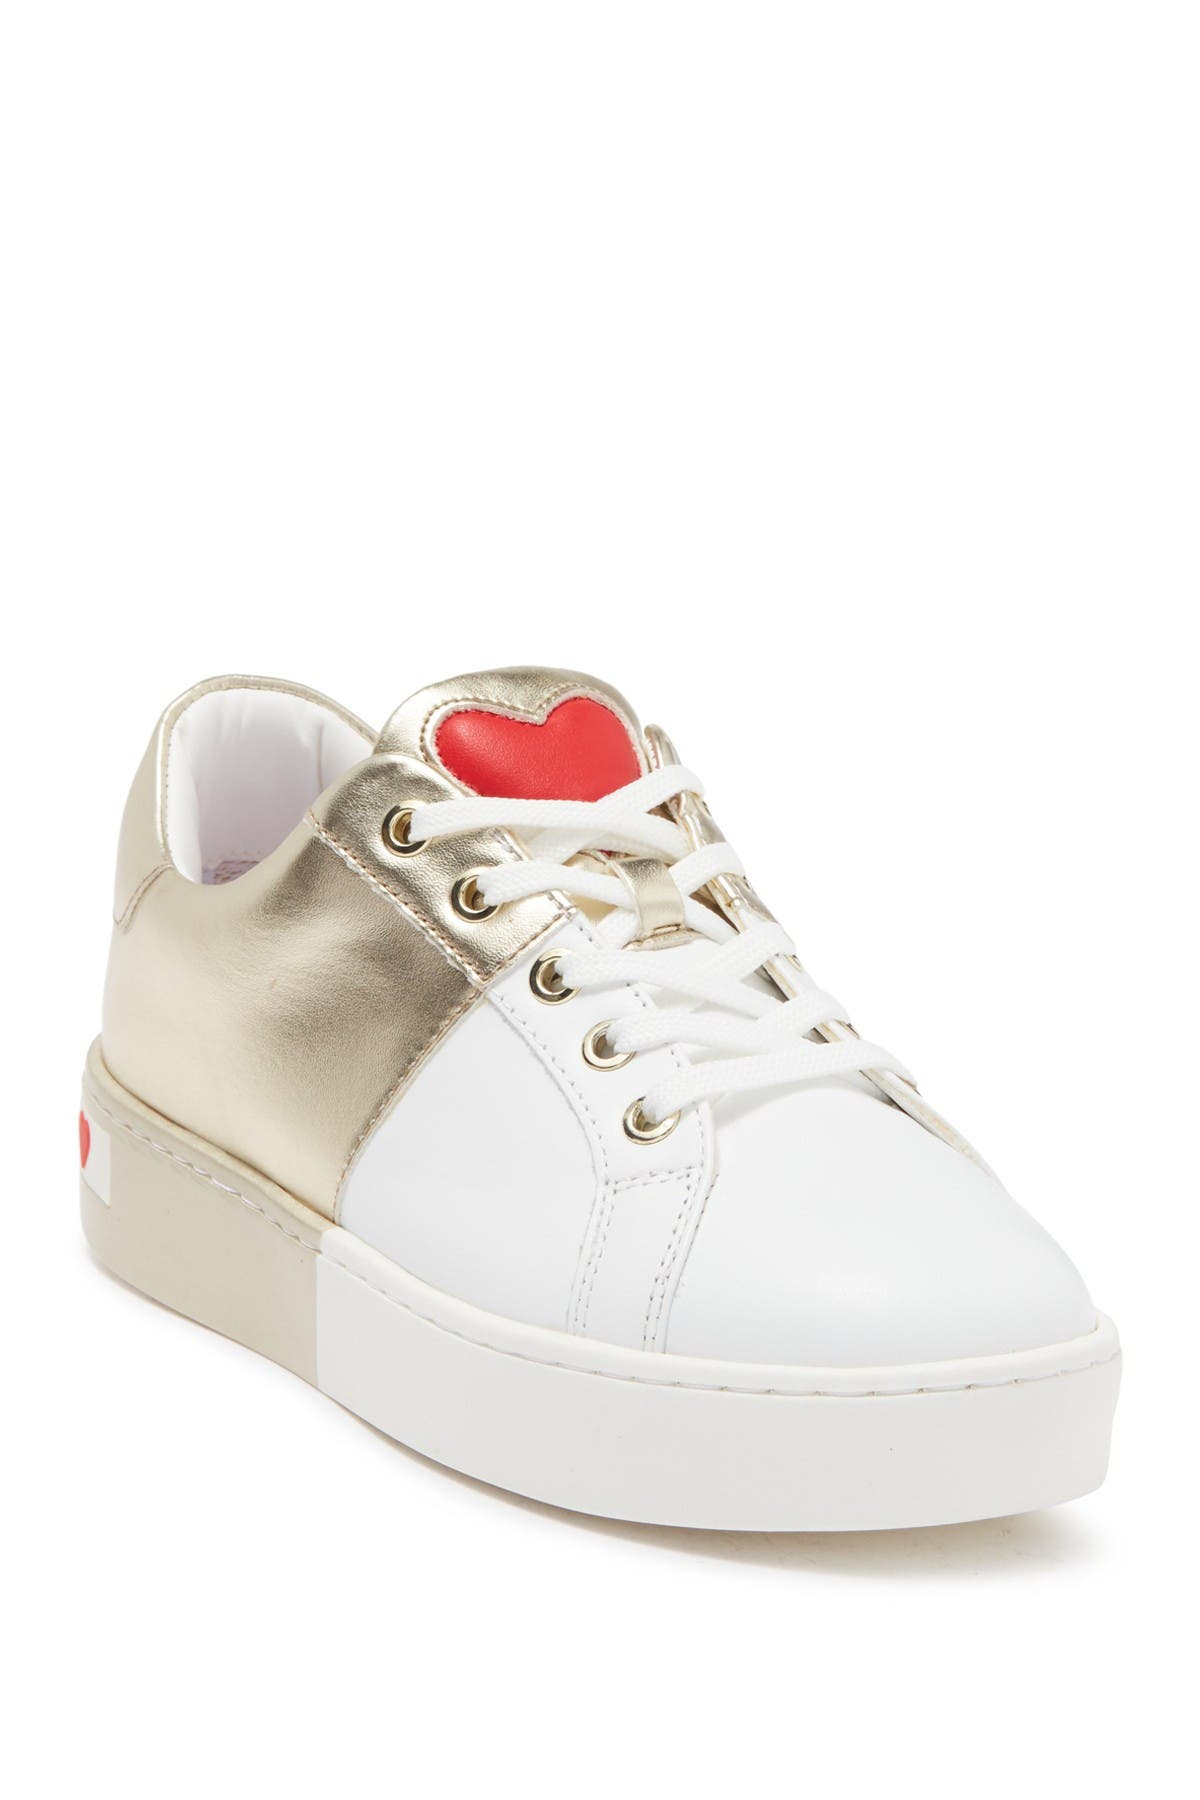 Image of LOVE Moschino Heart Two Tone Sneaker